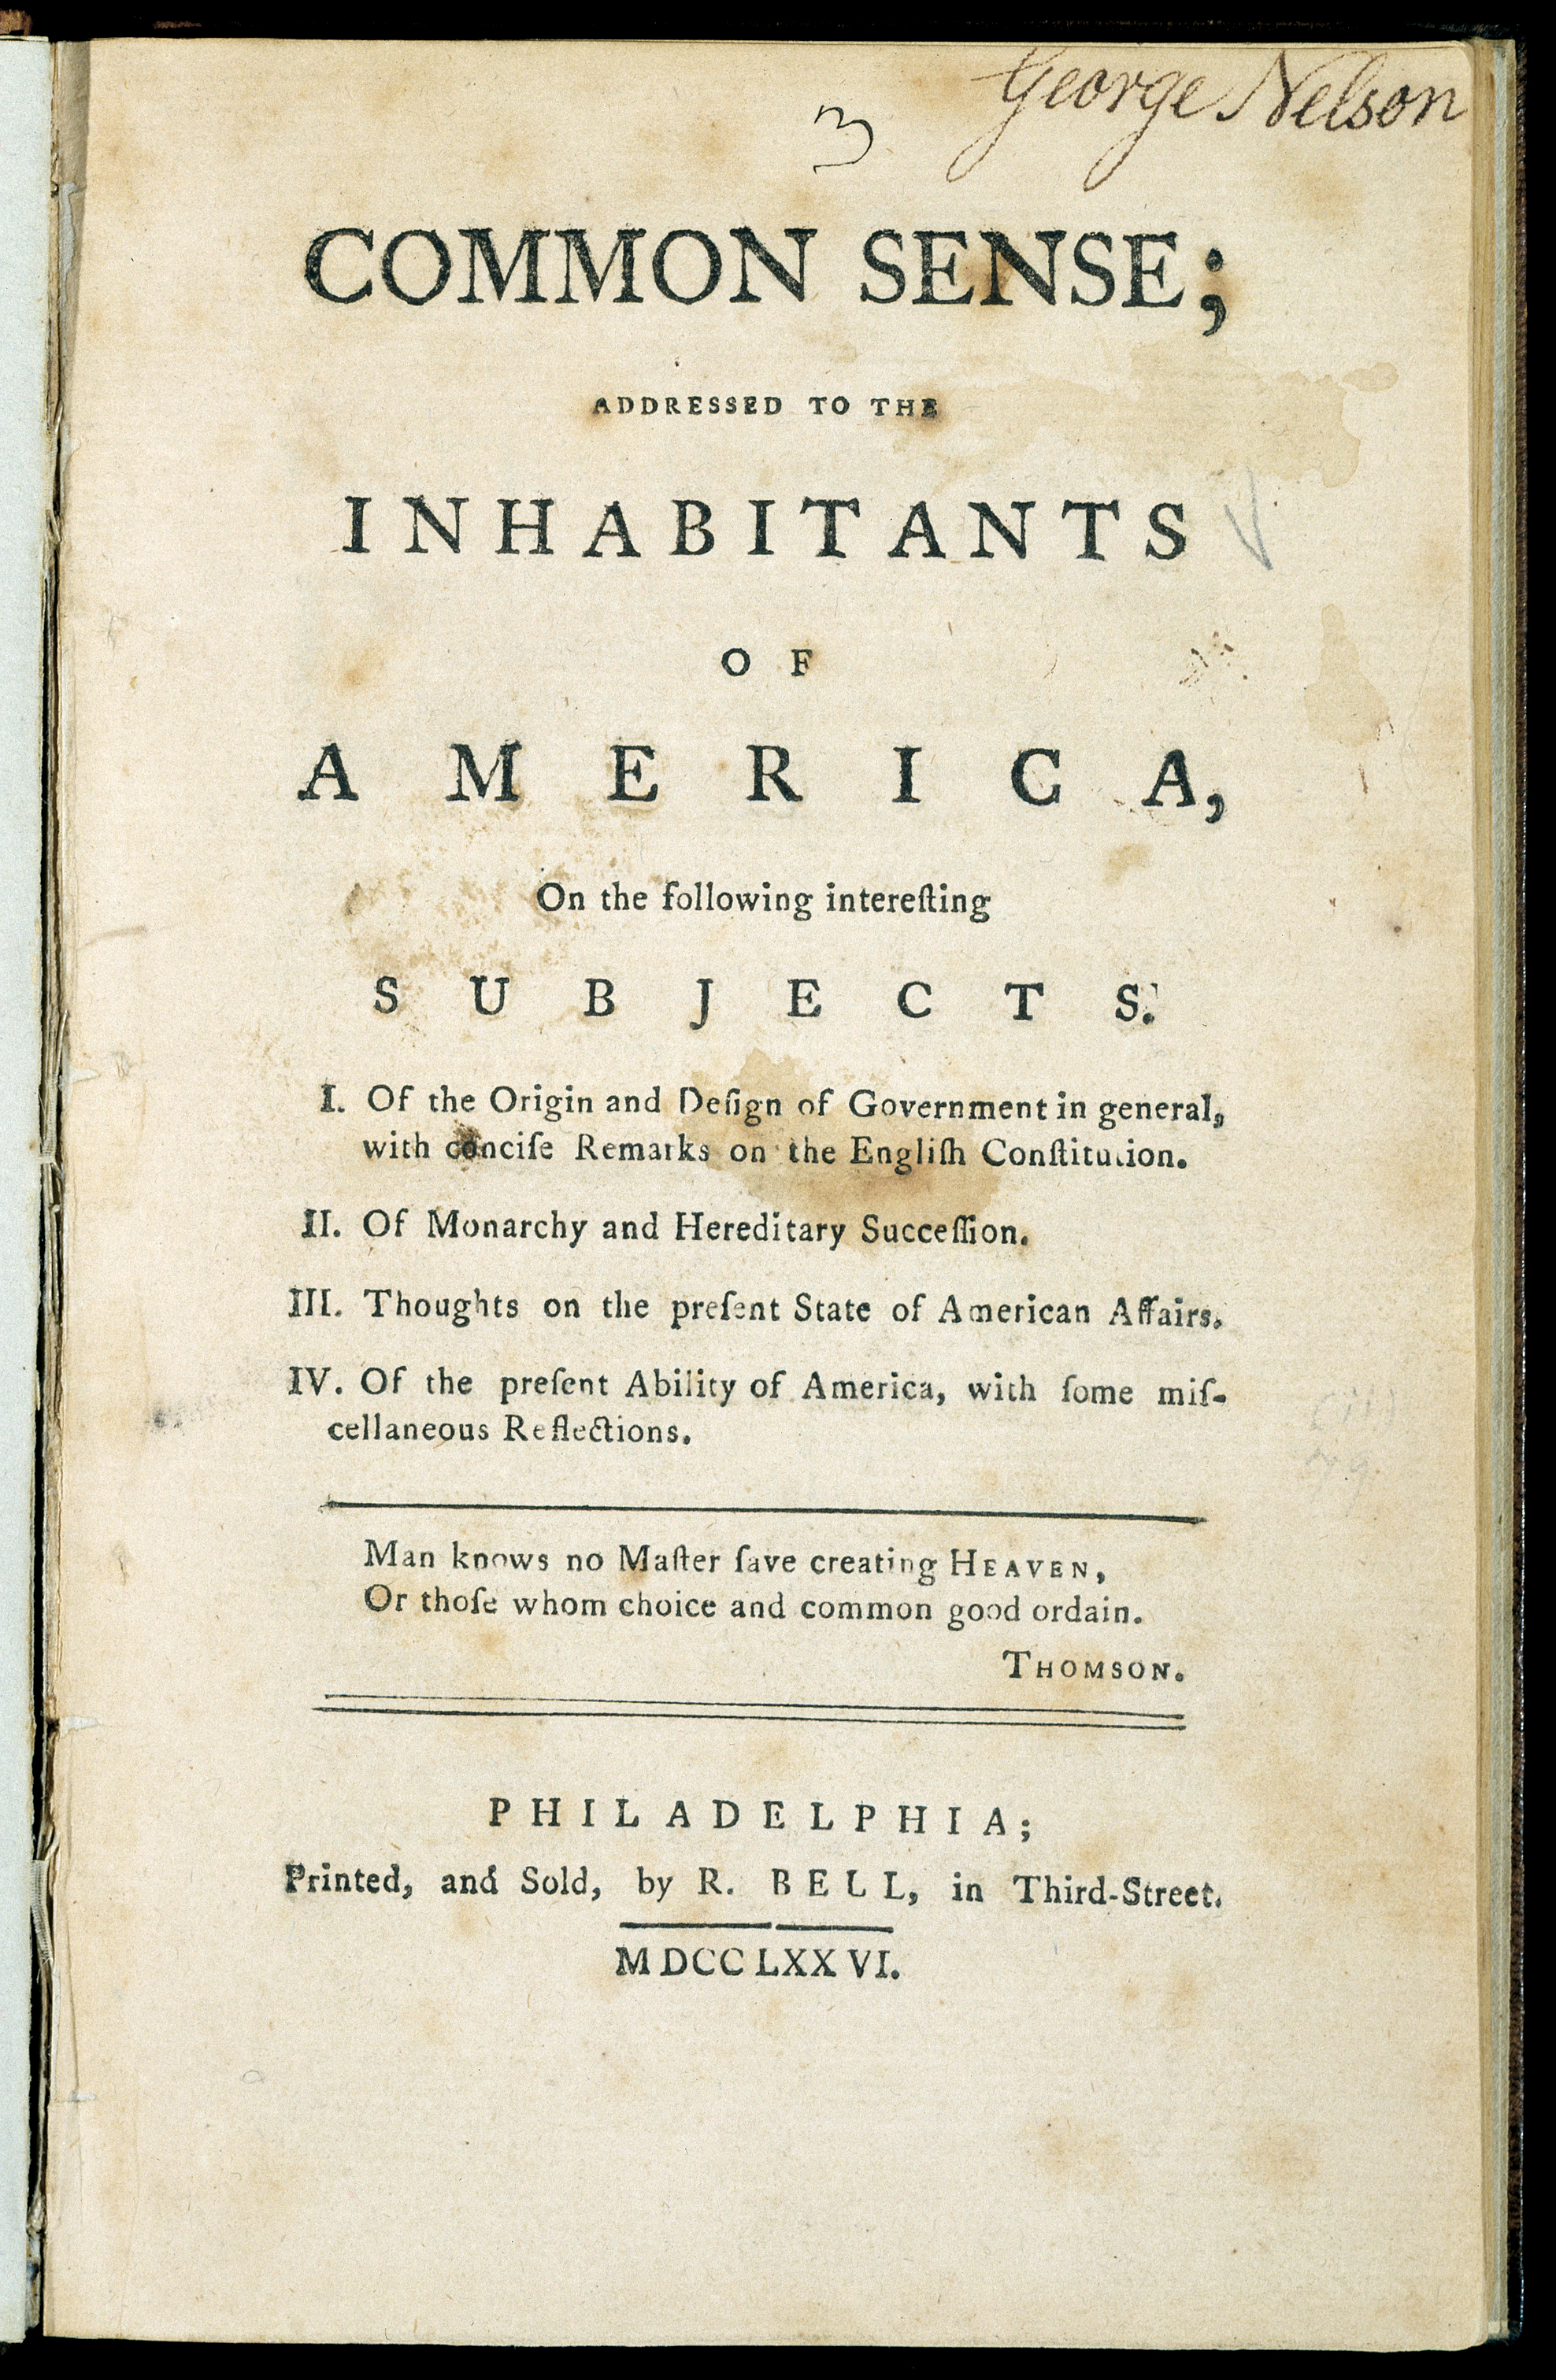 Thomas Paine's Common Sense title page on aged paper